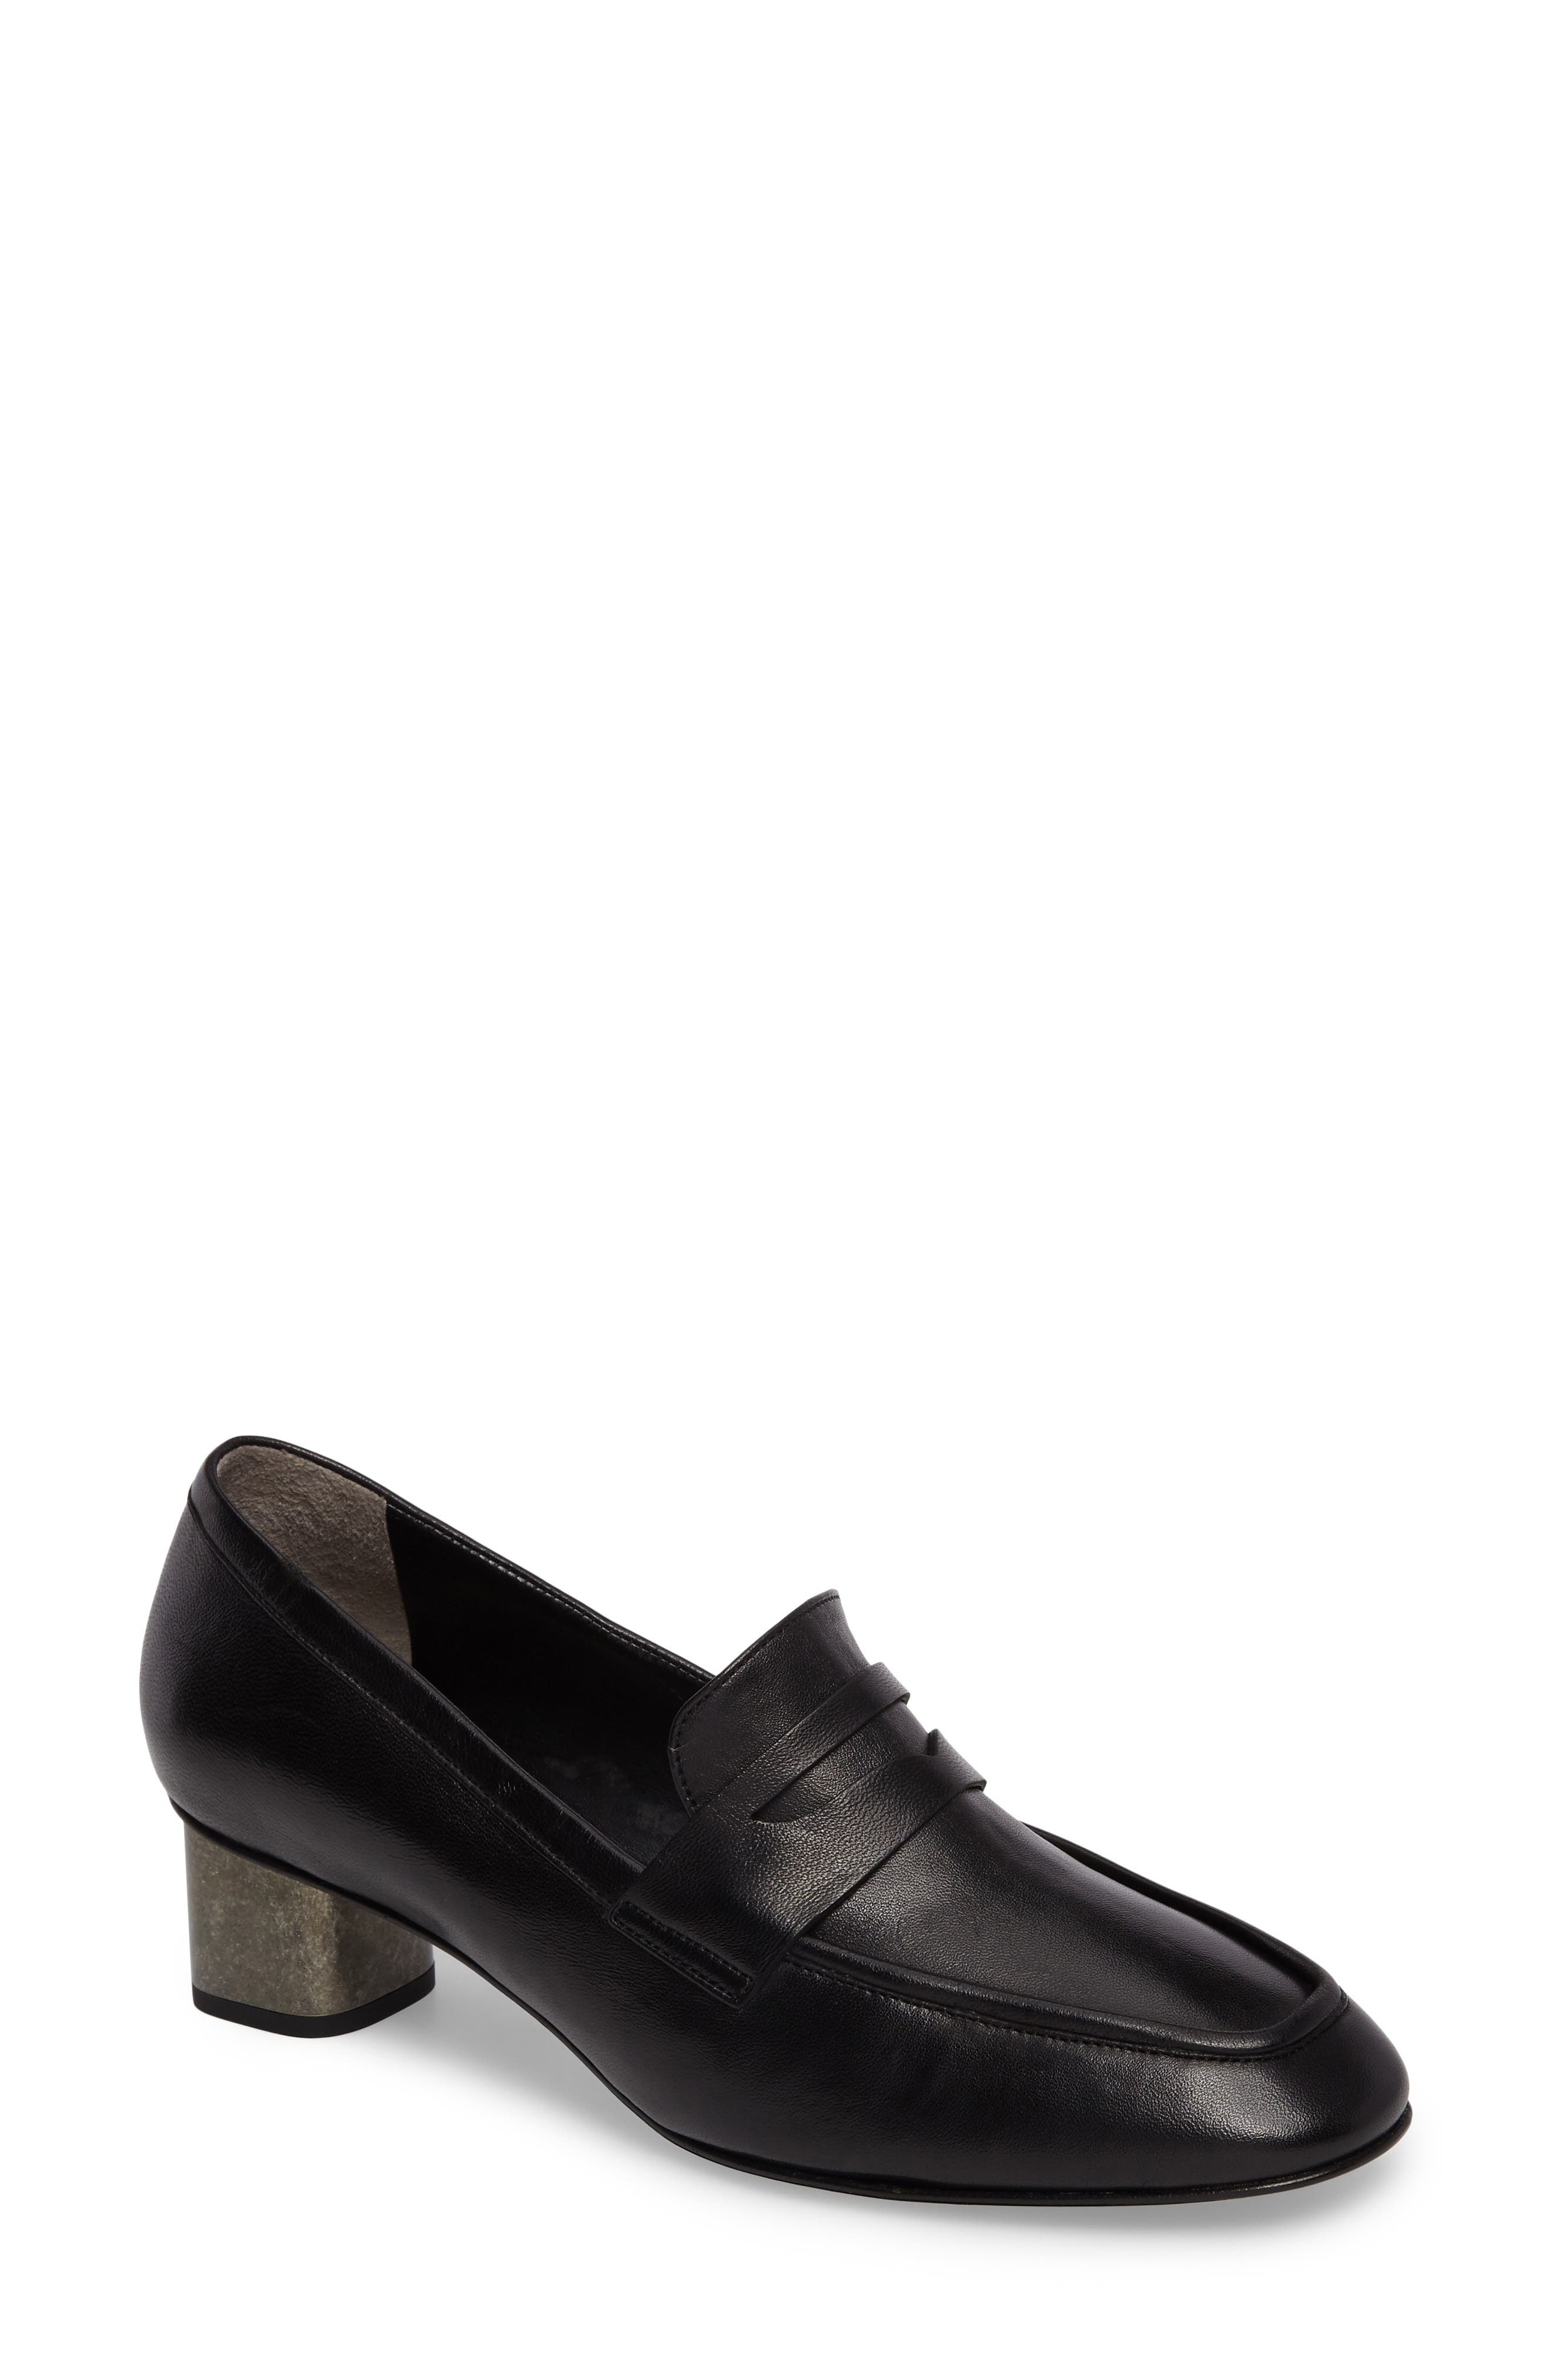 Robert Clergerie Povia Loafer Pump (Women)